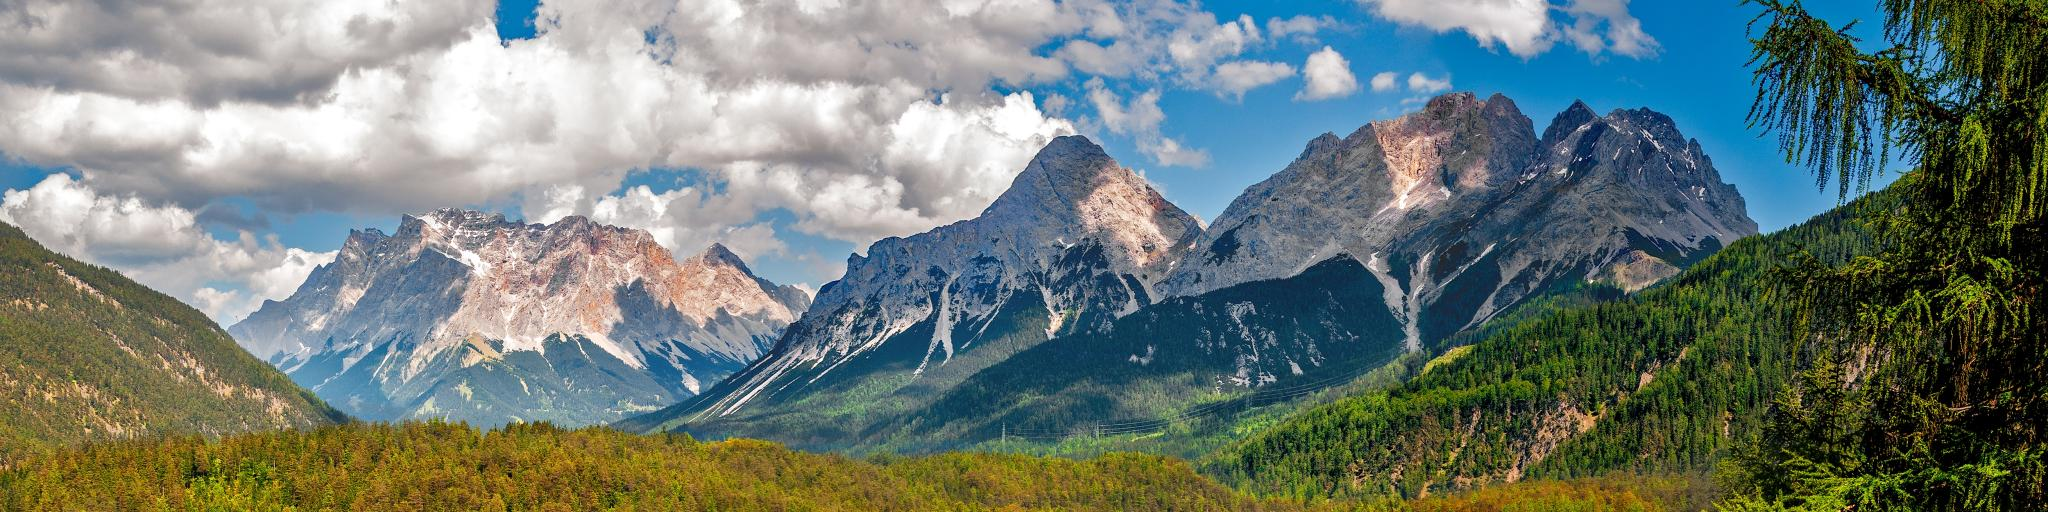 A landscape view of the mountains at Zugspitze, Austria, with forest and a lake in the foreground on a blue sky day